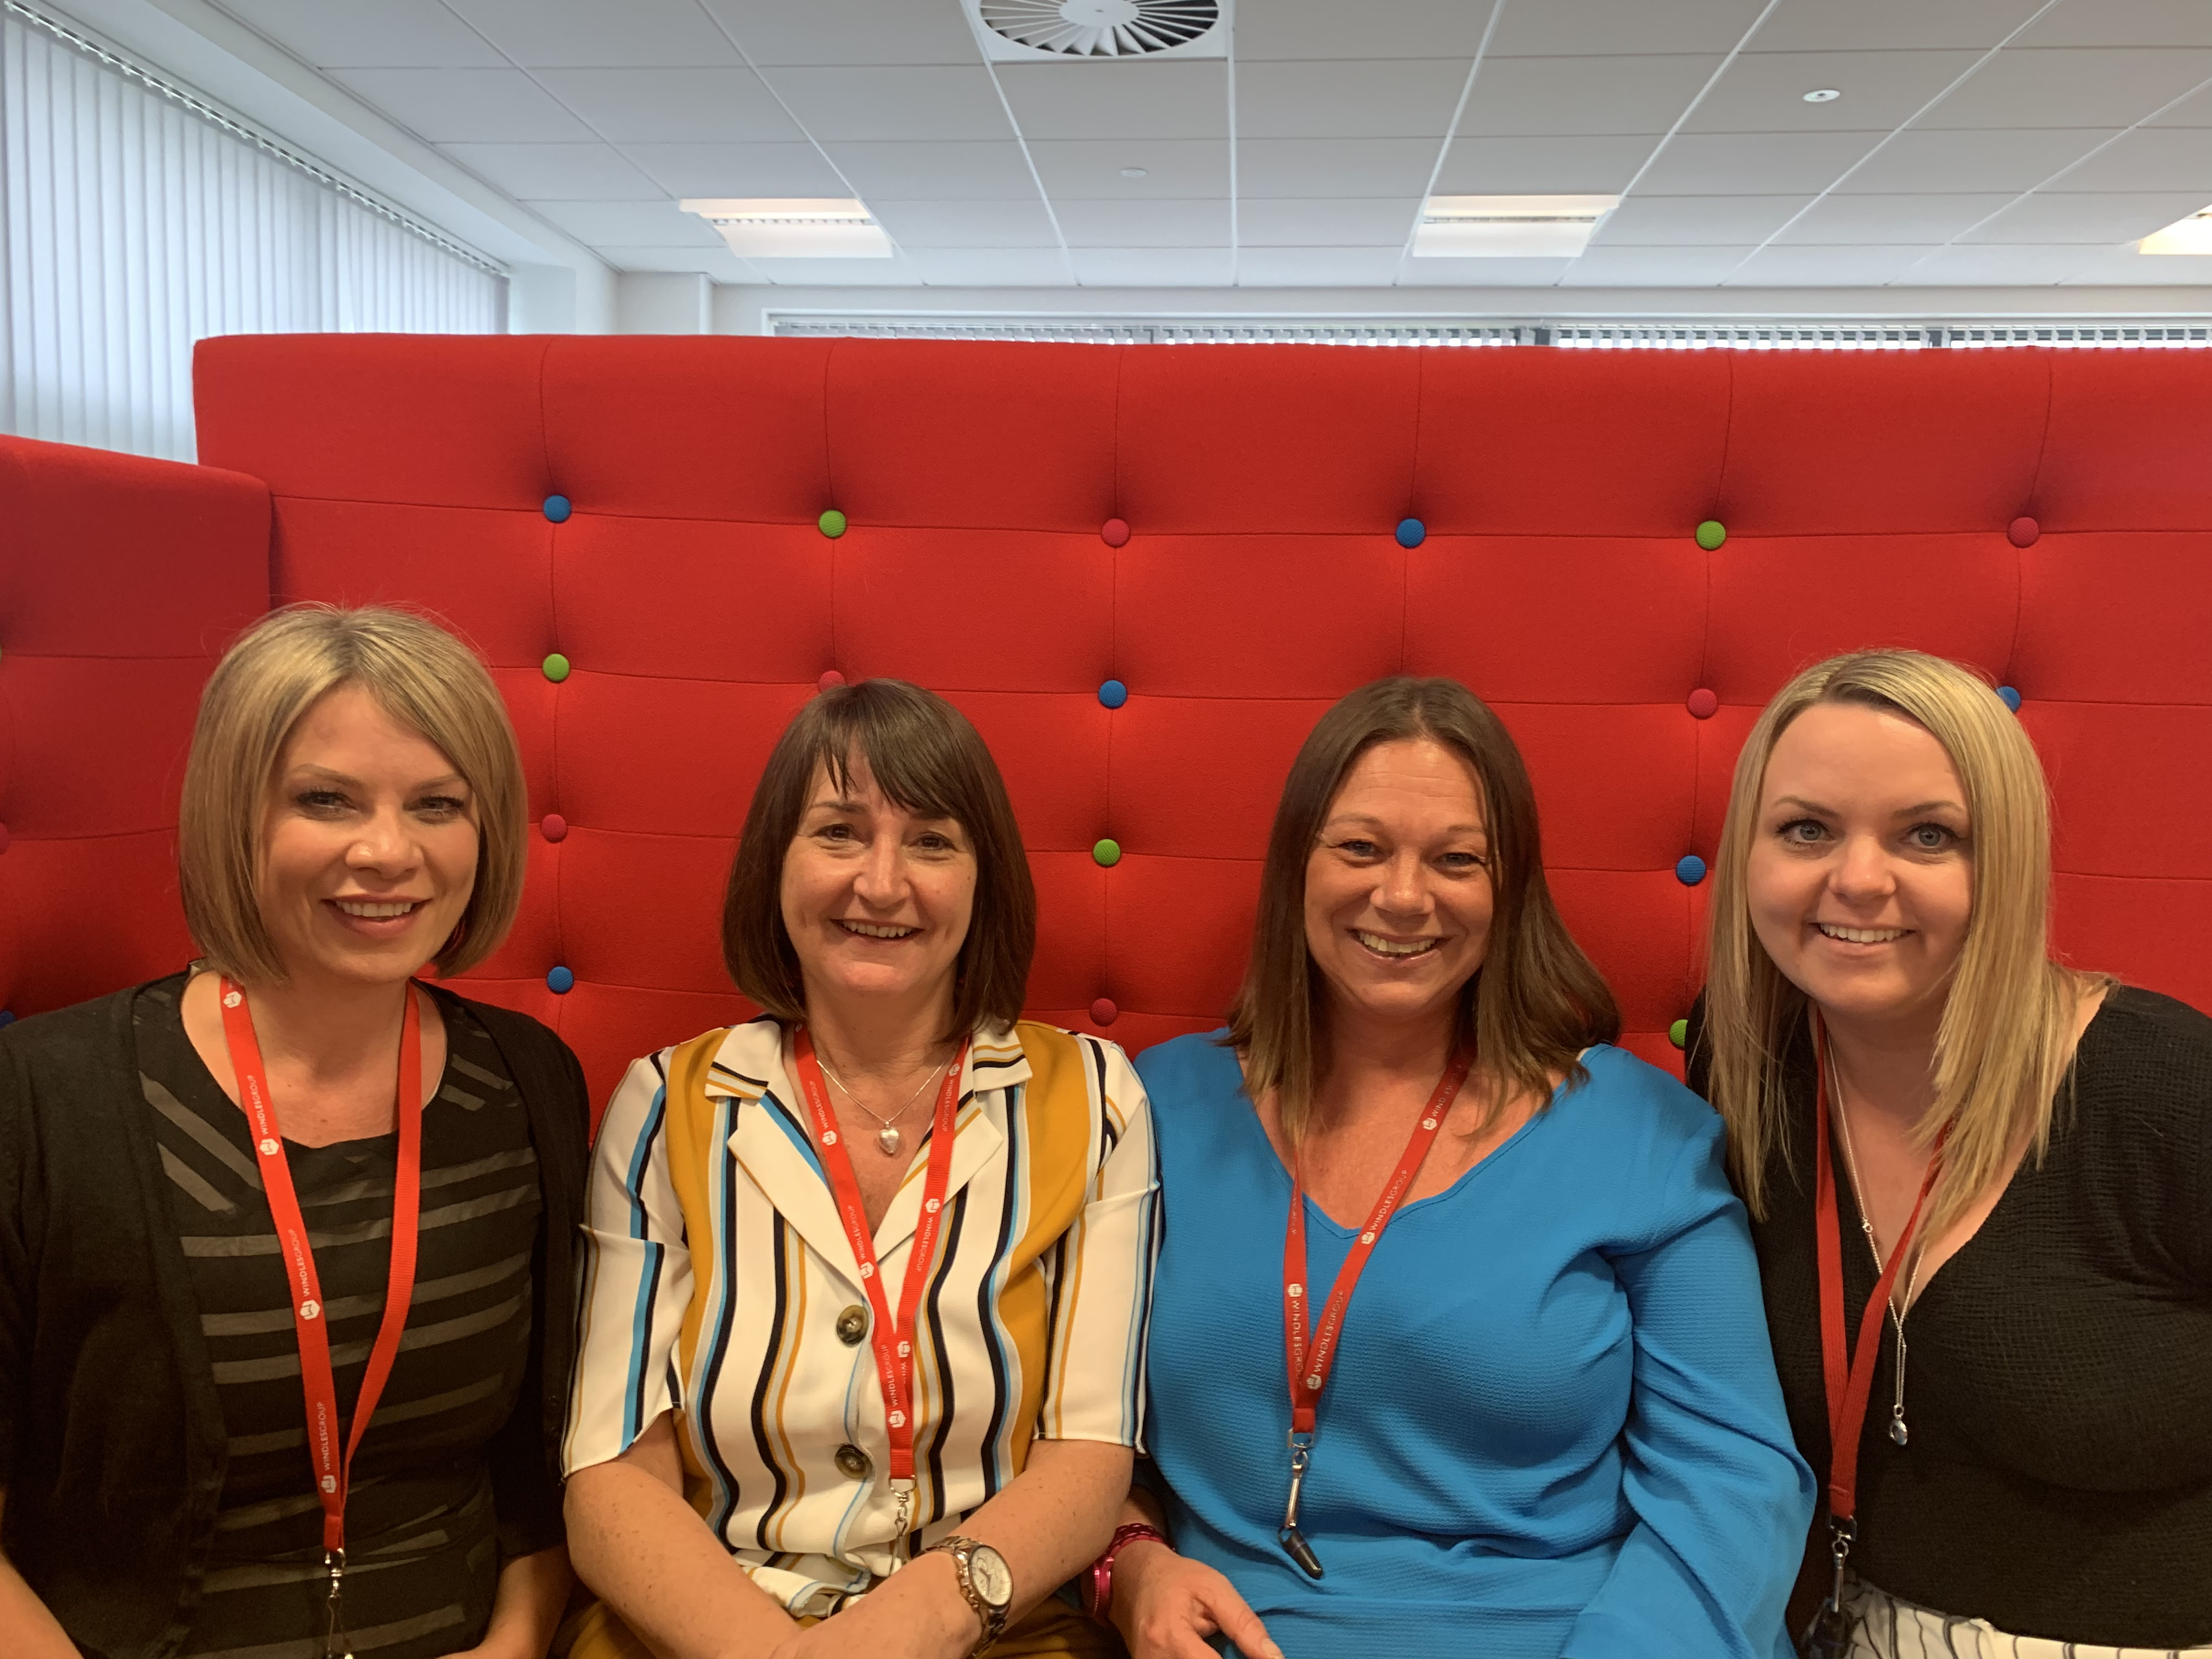 Above: Nicky Marshall (second left) joins other members of the Windles' sales team. (Left-right) sales director Andrea Norcott; Michelle Mills, business development and marketing manager and Emma-Louise Allen, key accounts manager.